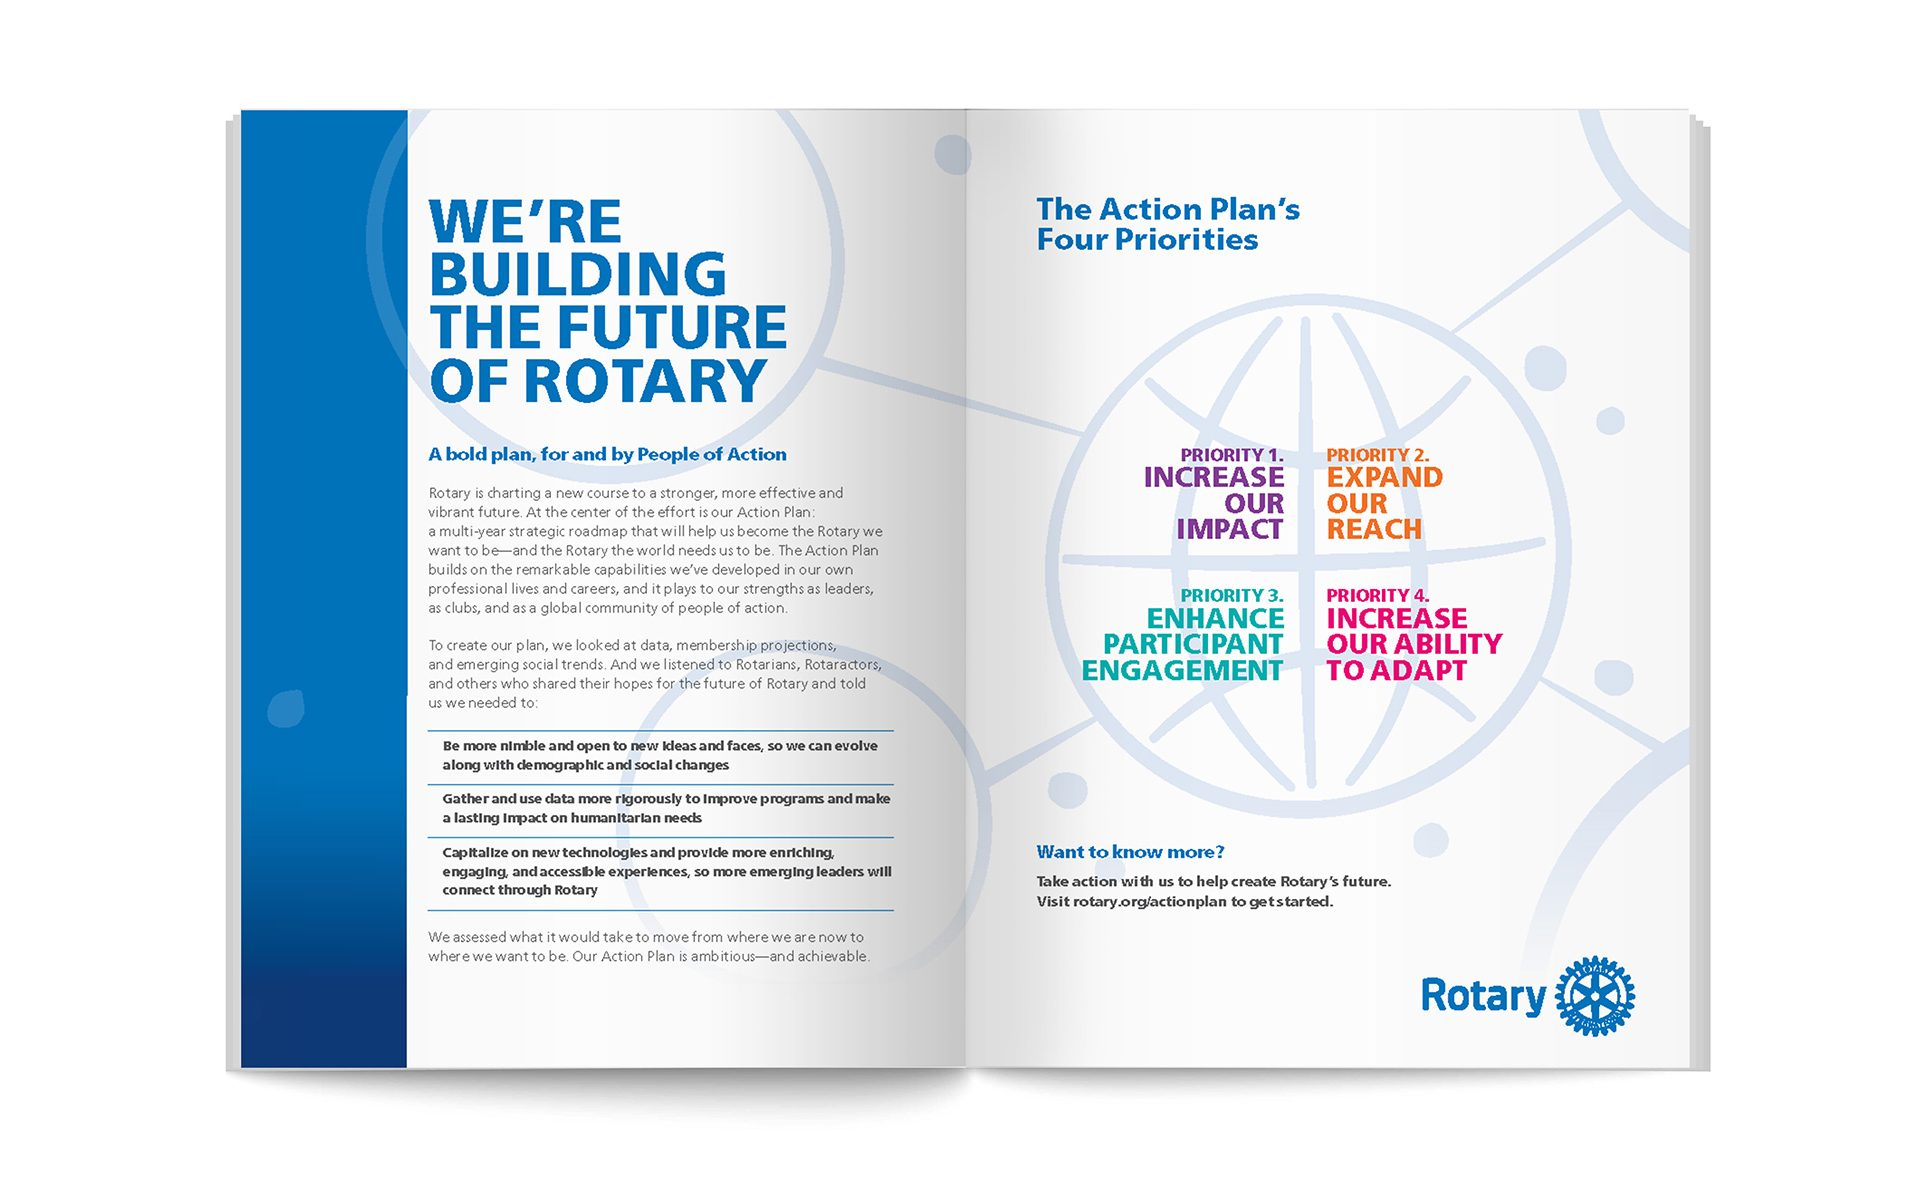 We're building the future of Rotary.